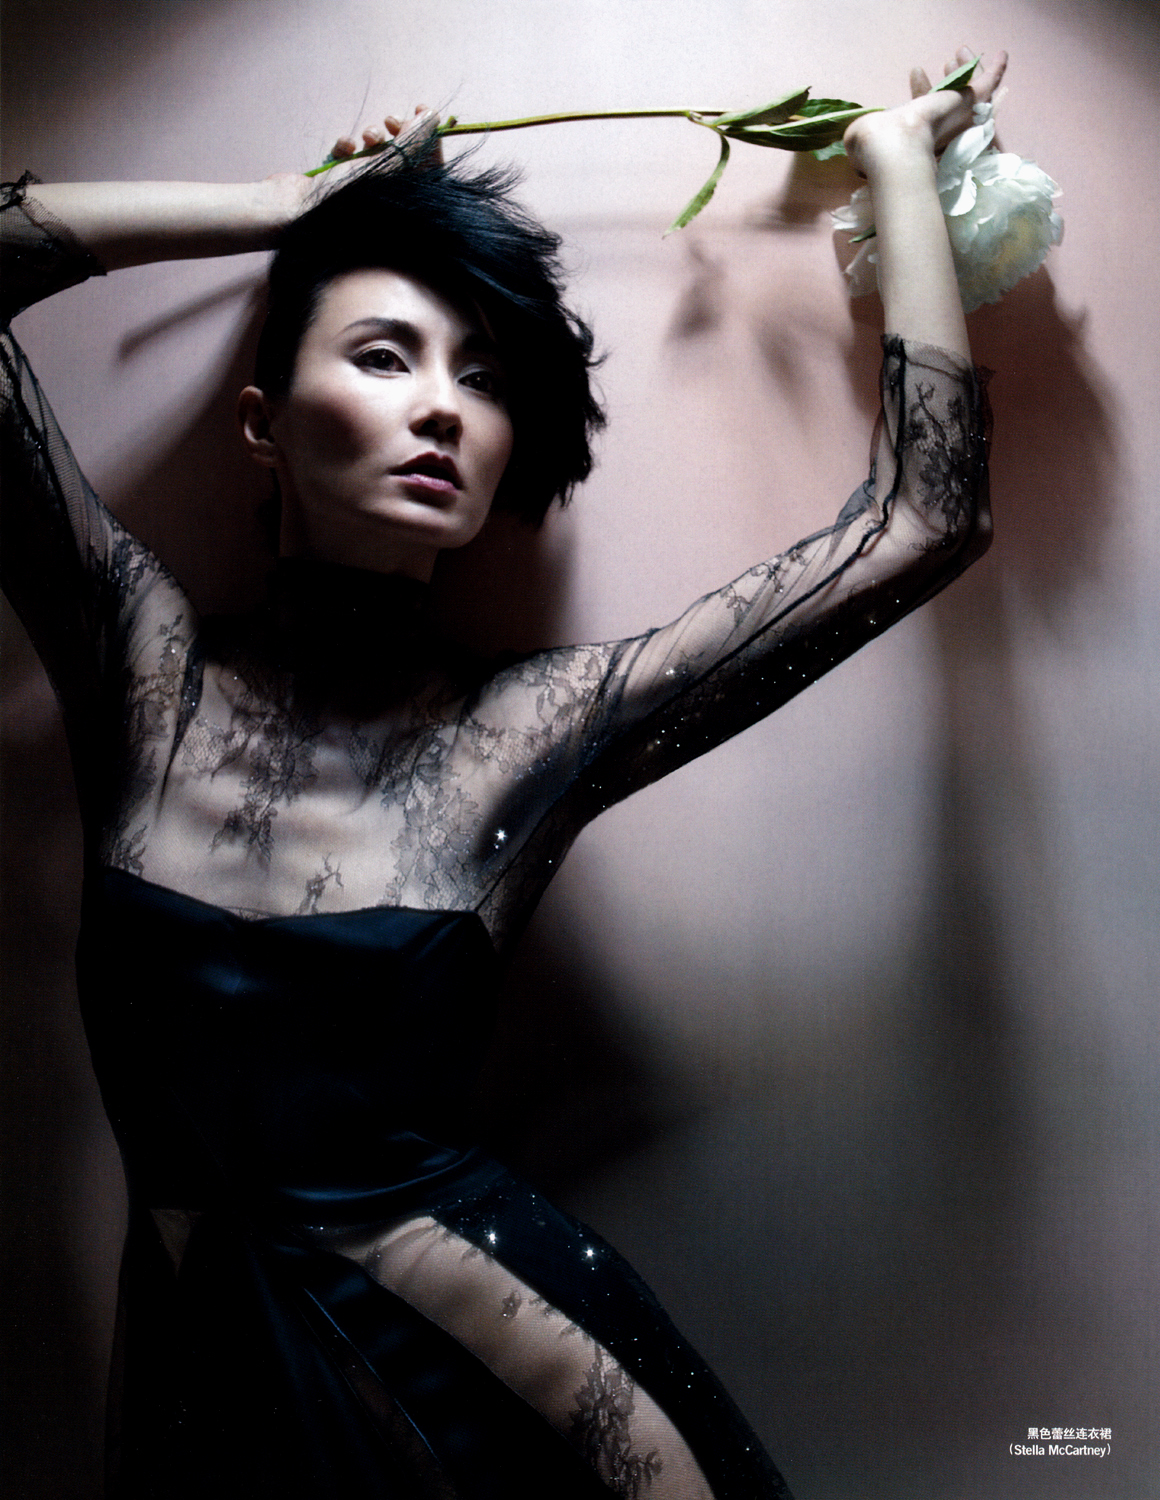 Maggie cheung nude pics-1908